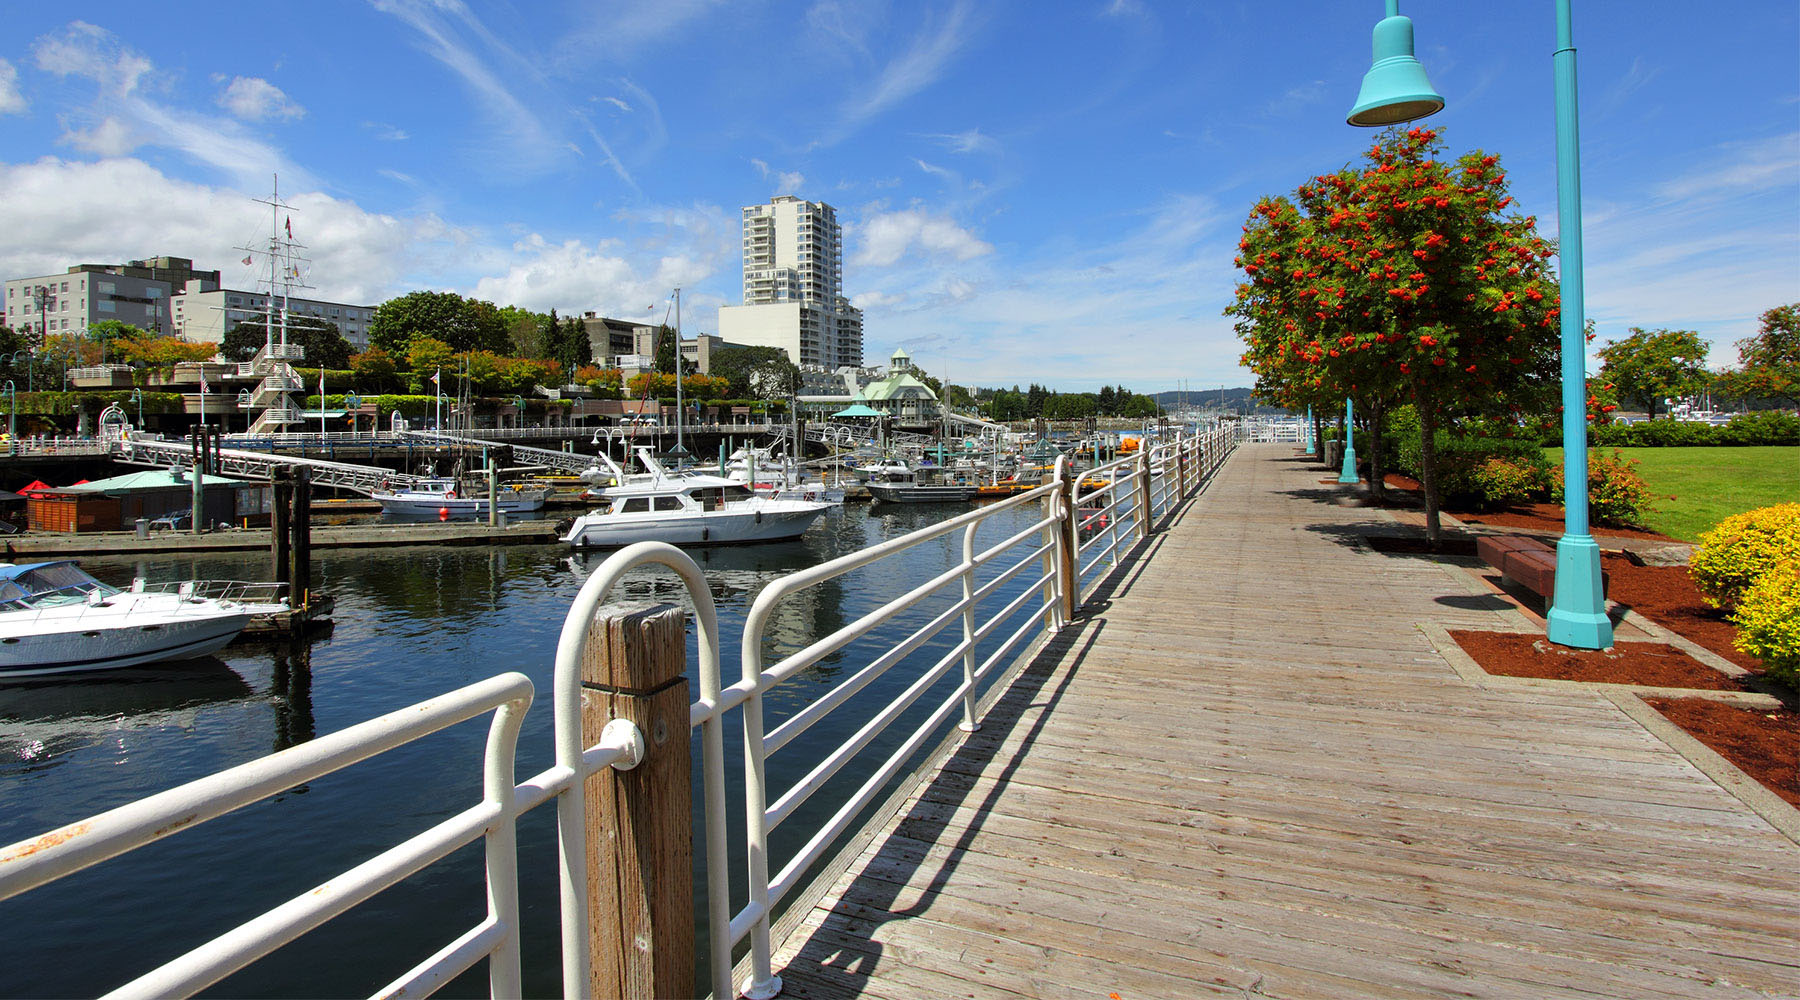 Nanaimo, British Columbia